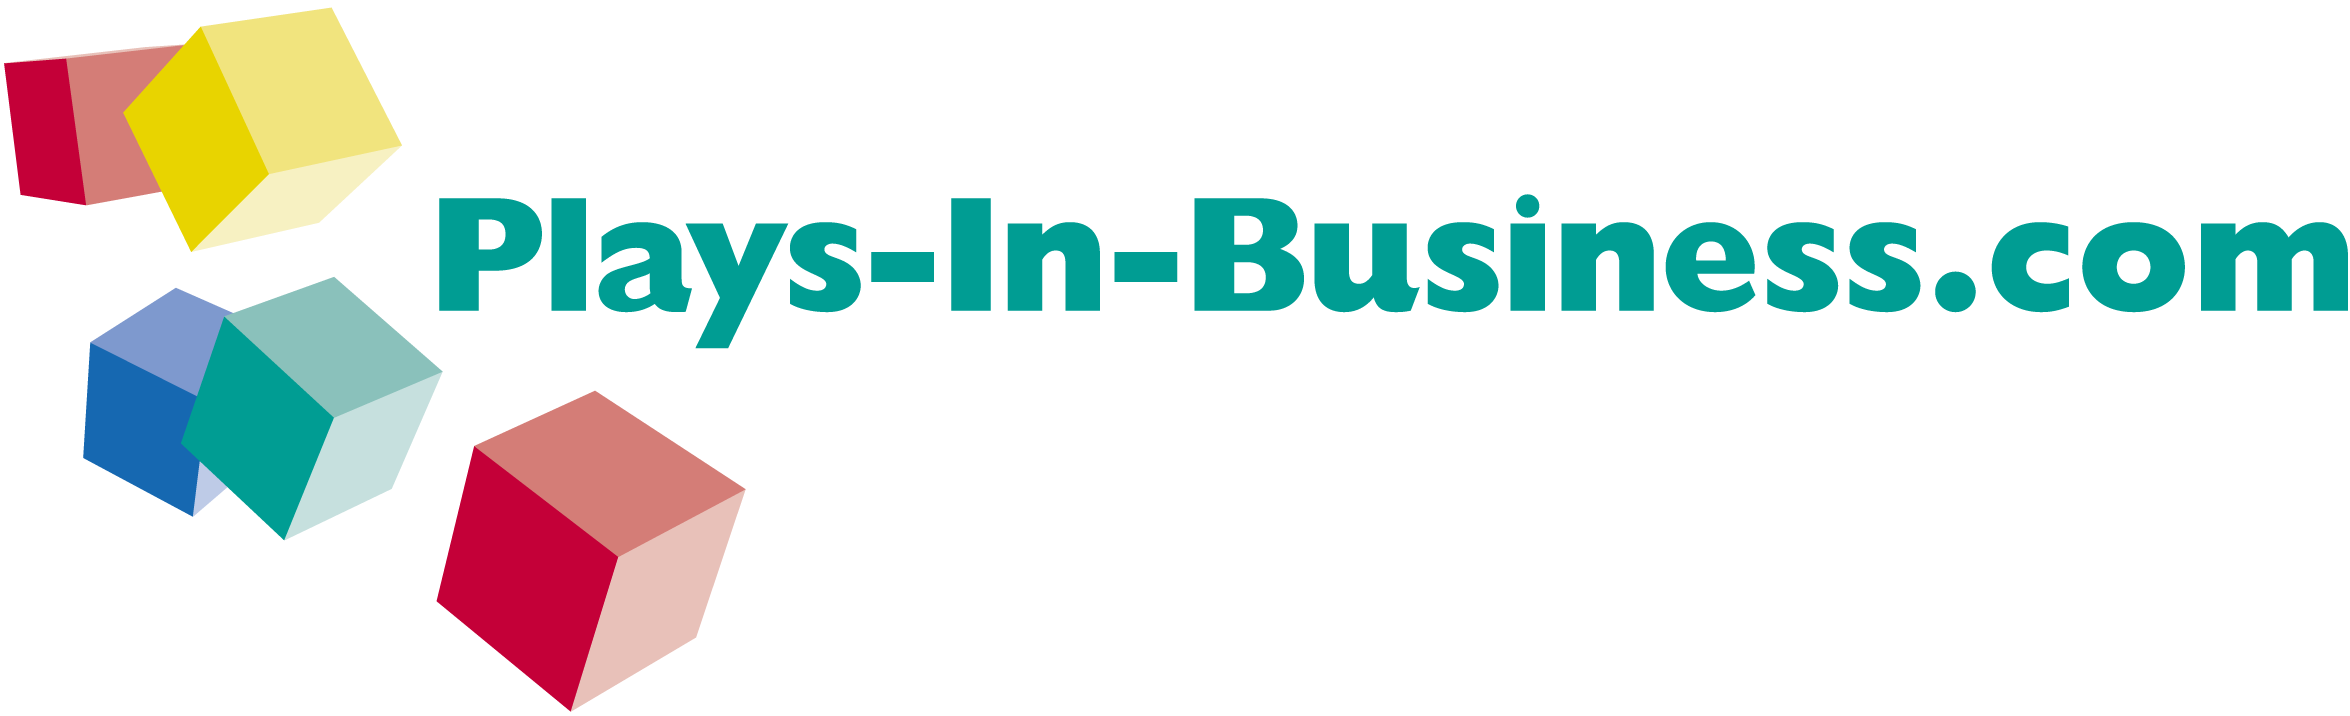 Plays in Business logo